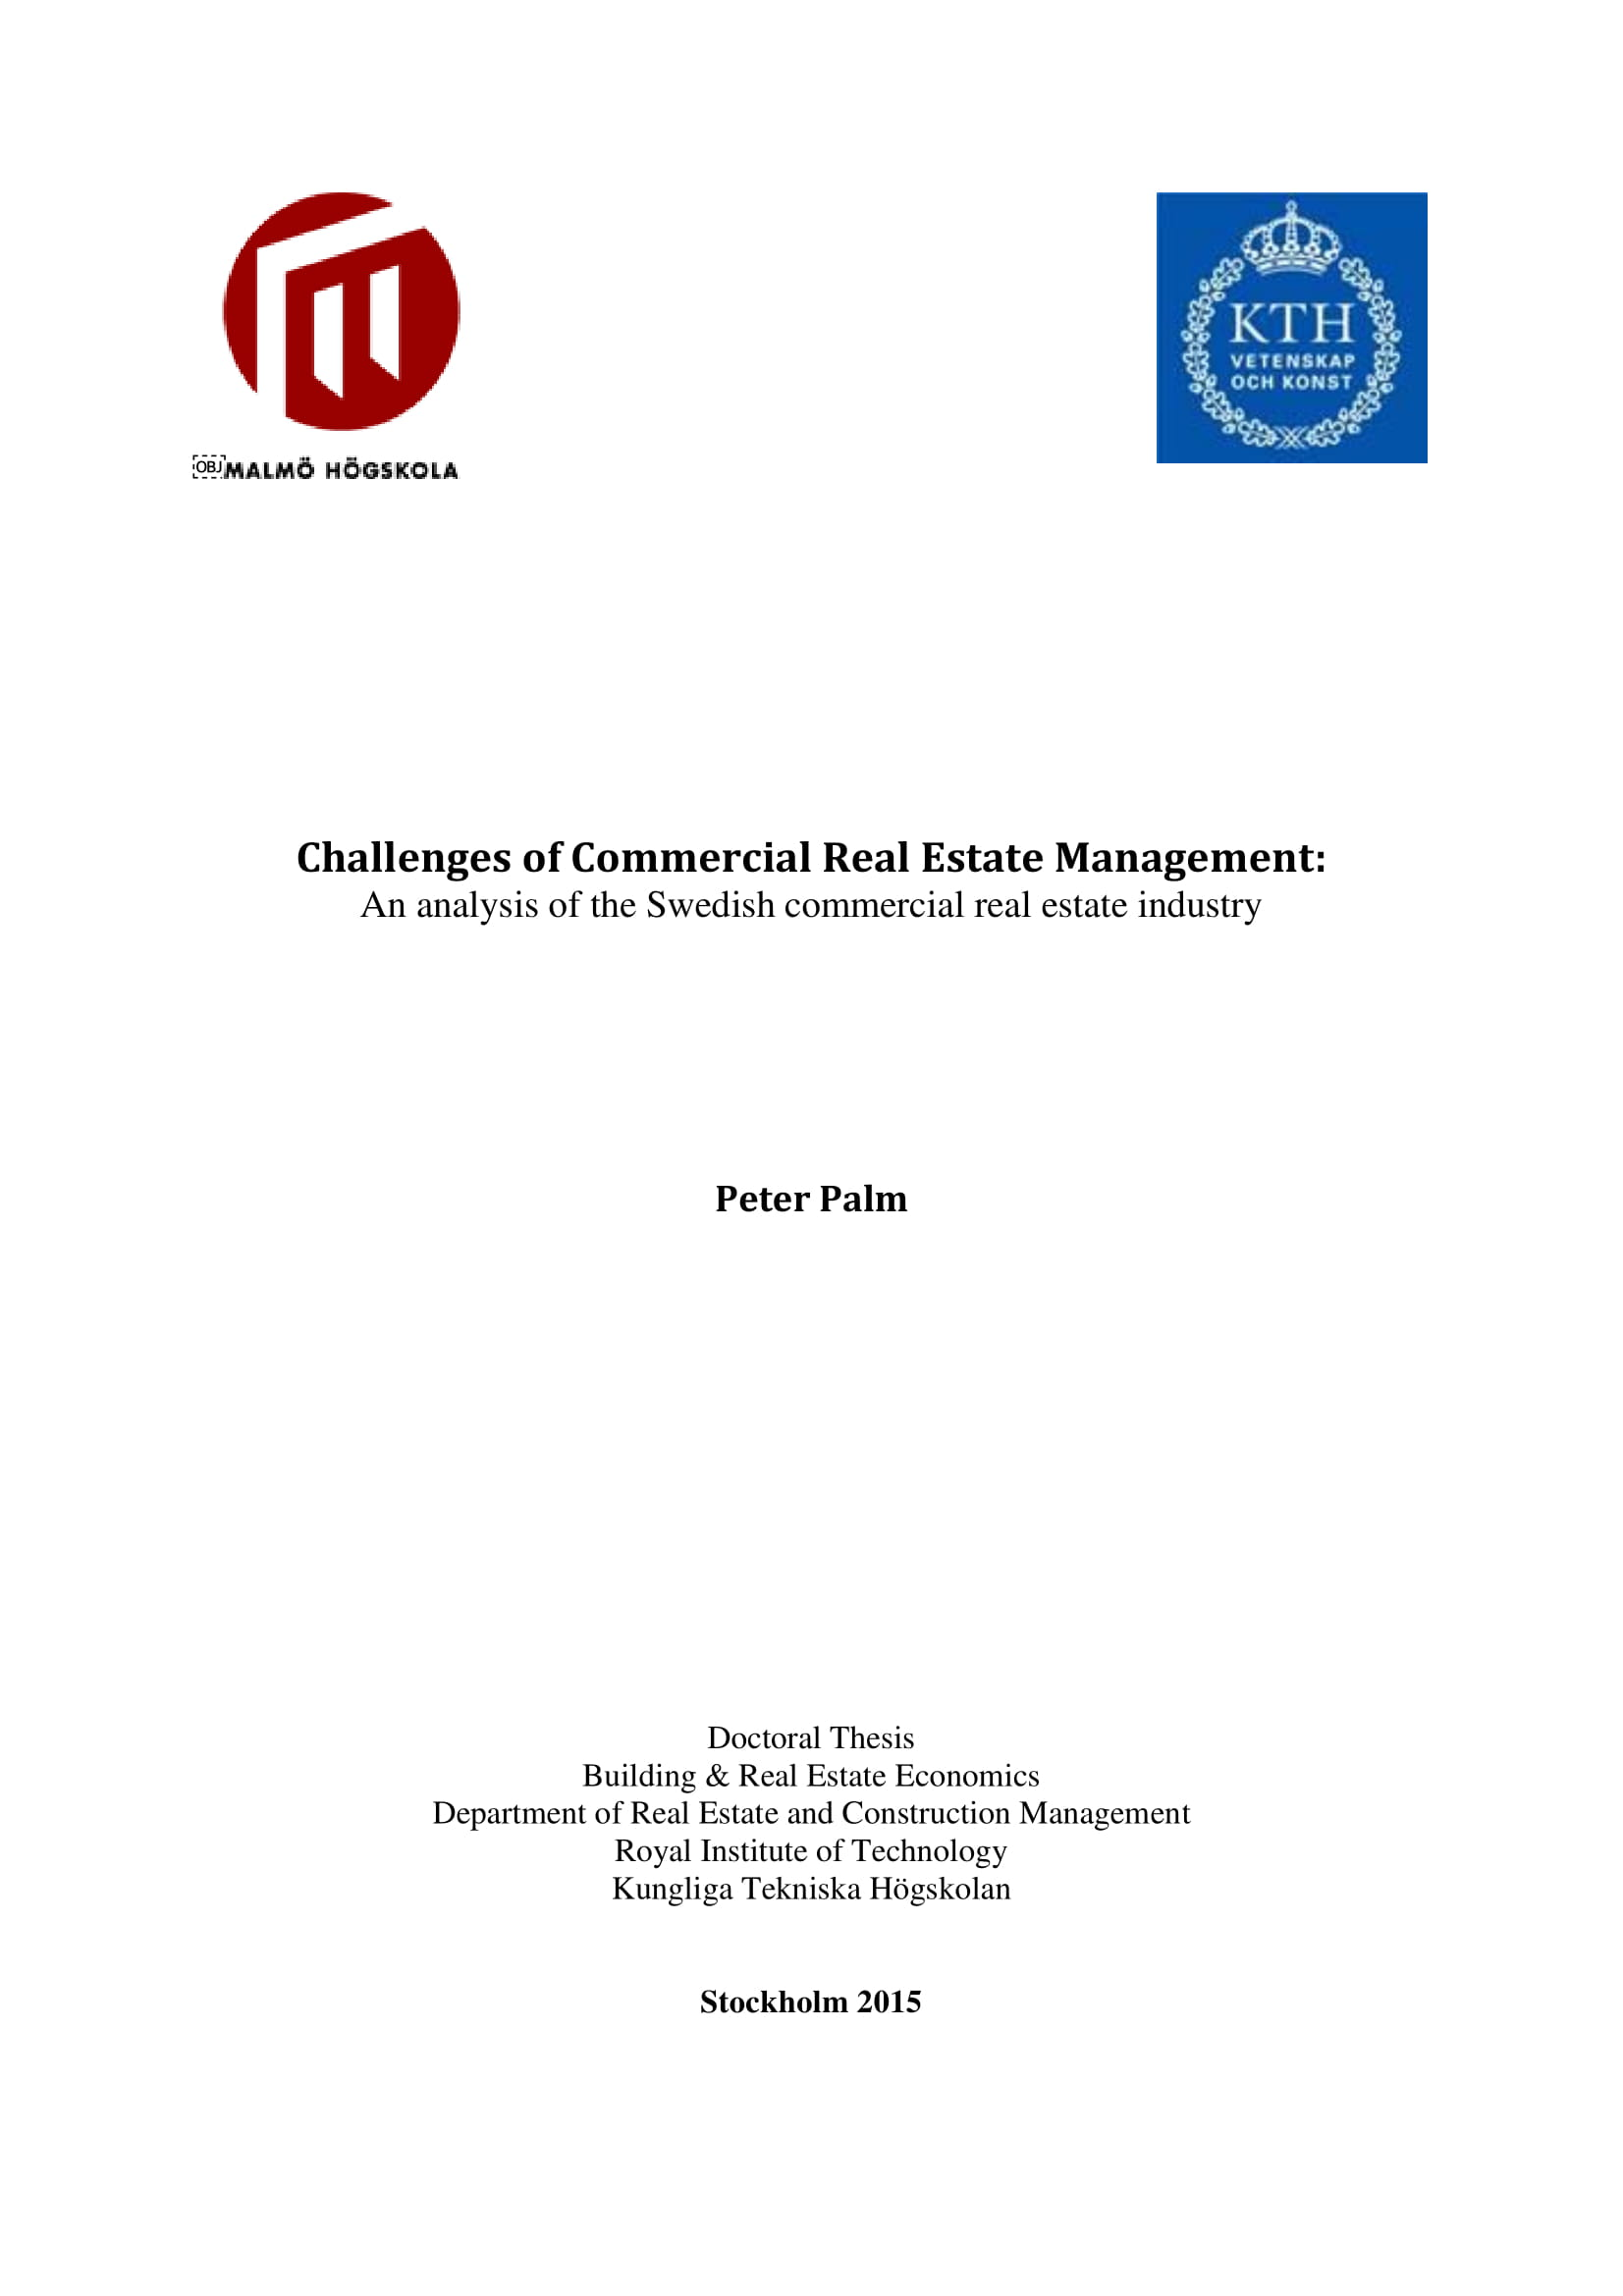 commercial real estate management and marketing plan to combat challenges example 001